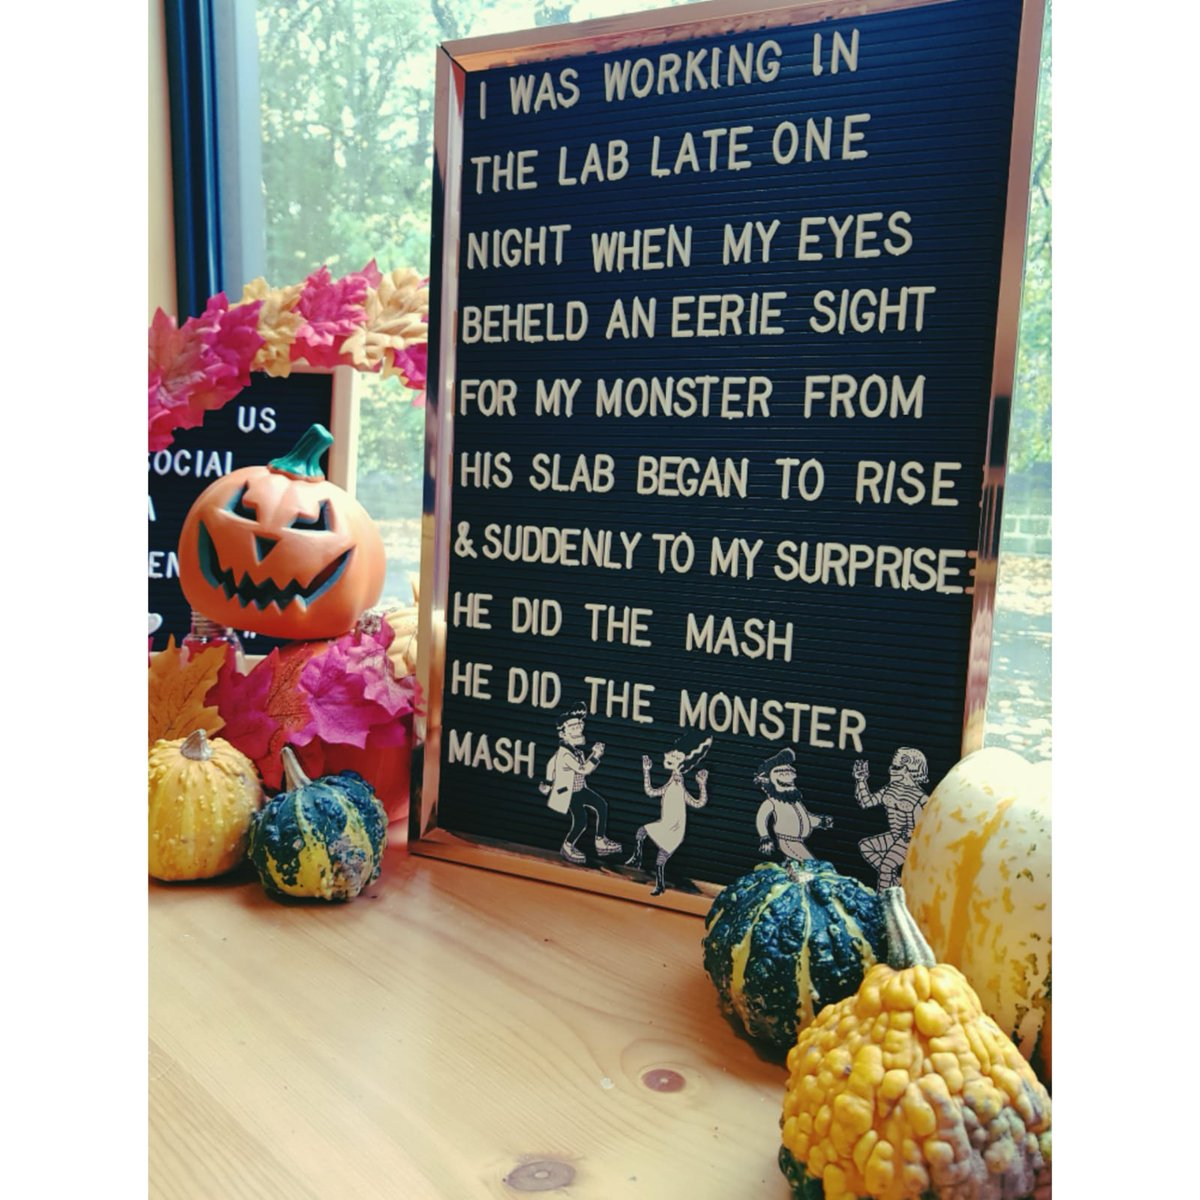 He did the mash, he did the monster mash! 👻🧛🧟  Happy Halloween - whether you're trick or treating, having a  pumpkin carving competition or indulging in a scary movie marathon with all the popcorn- enjoy & be safe!  🎃 #halloween #pumpkins #monstermash #trickortreat #leeds https://t.co/MeHWGGAa3k